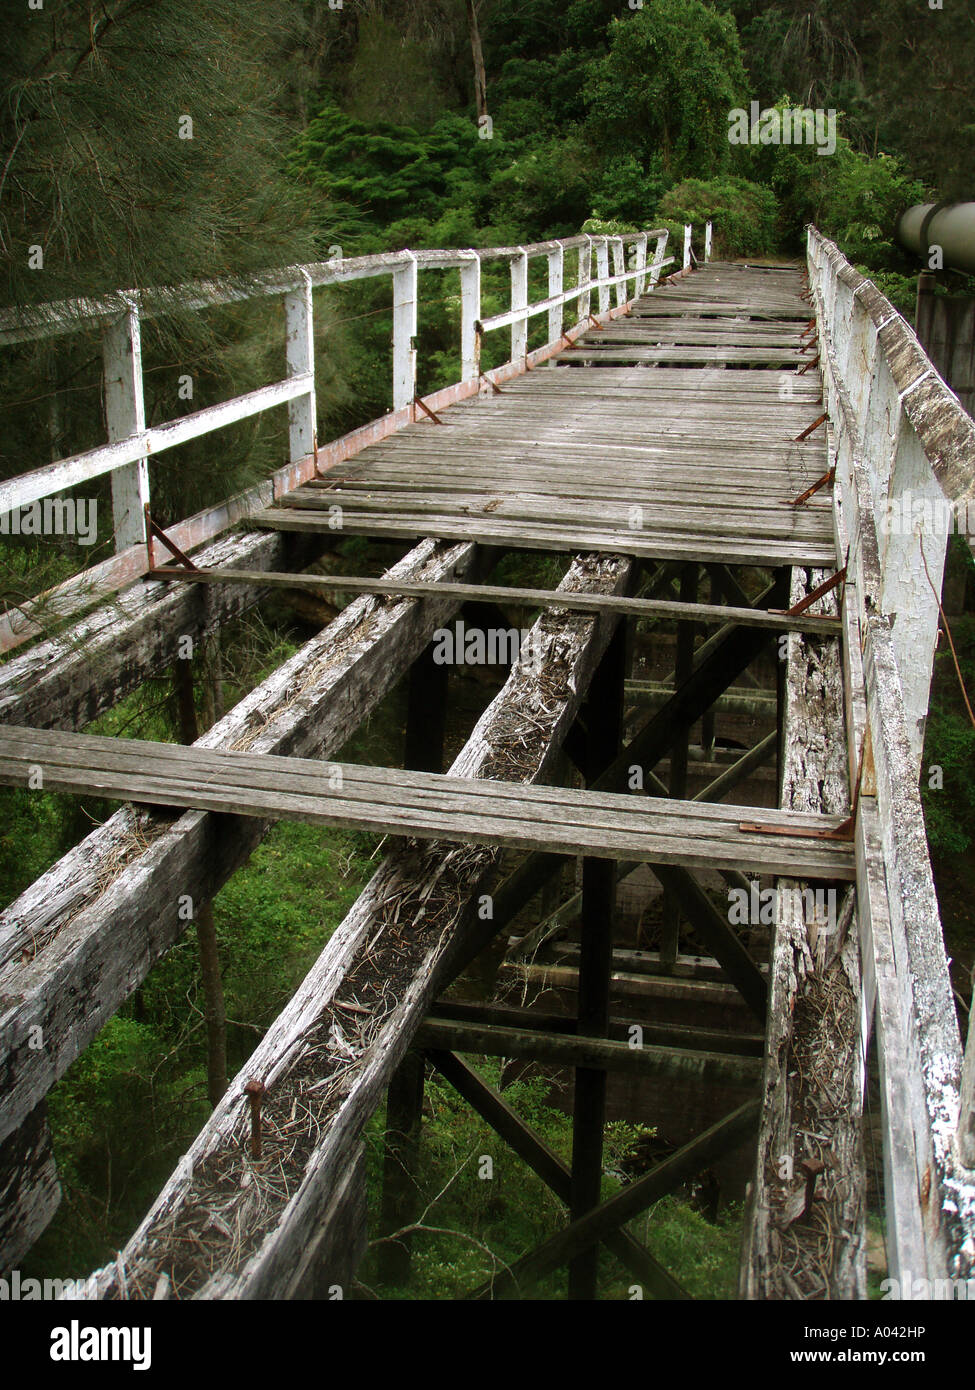 A rotting and abandoned wooden bridge to nowhere - Stock Image